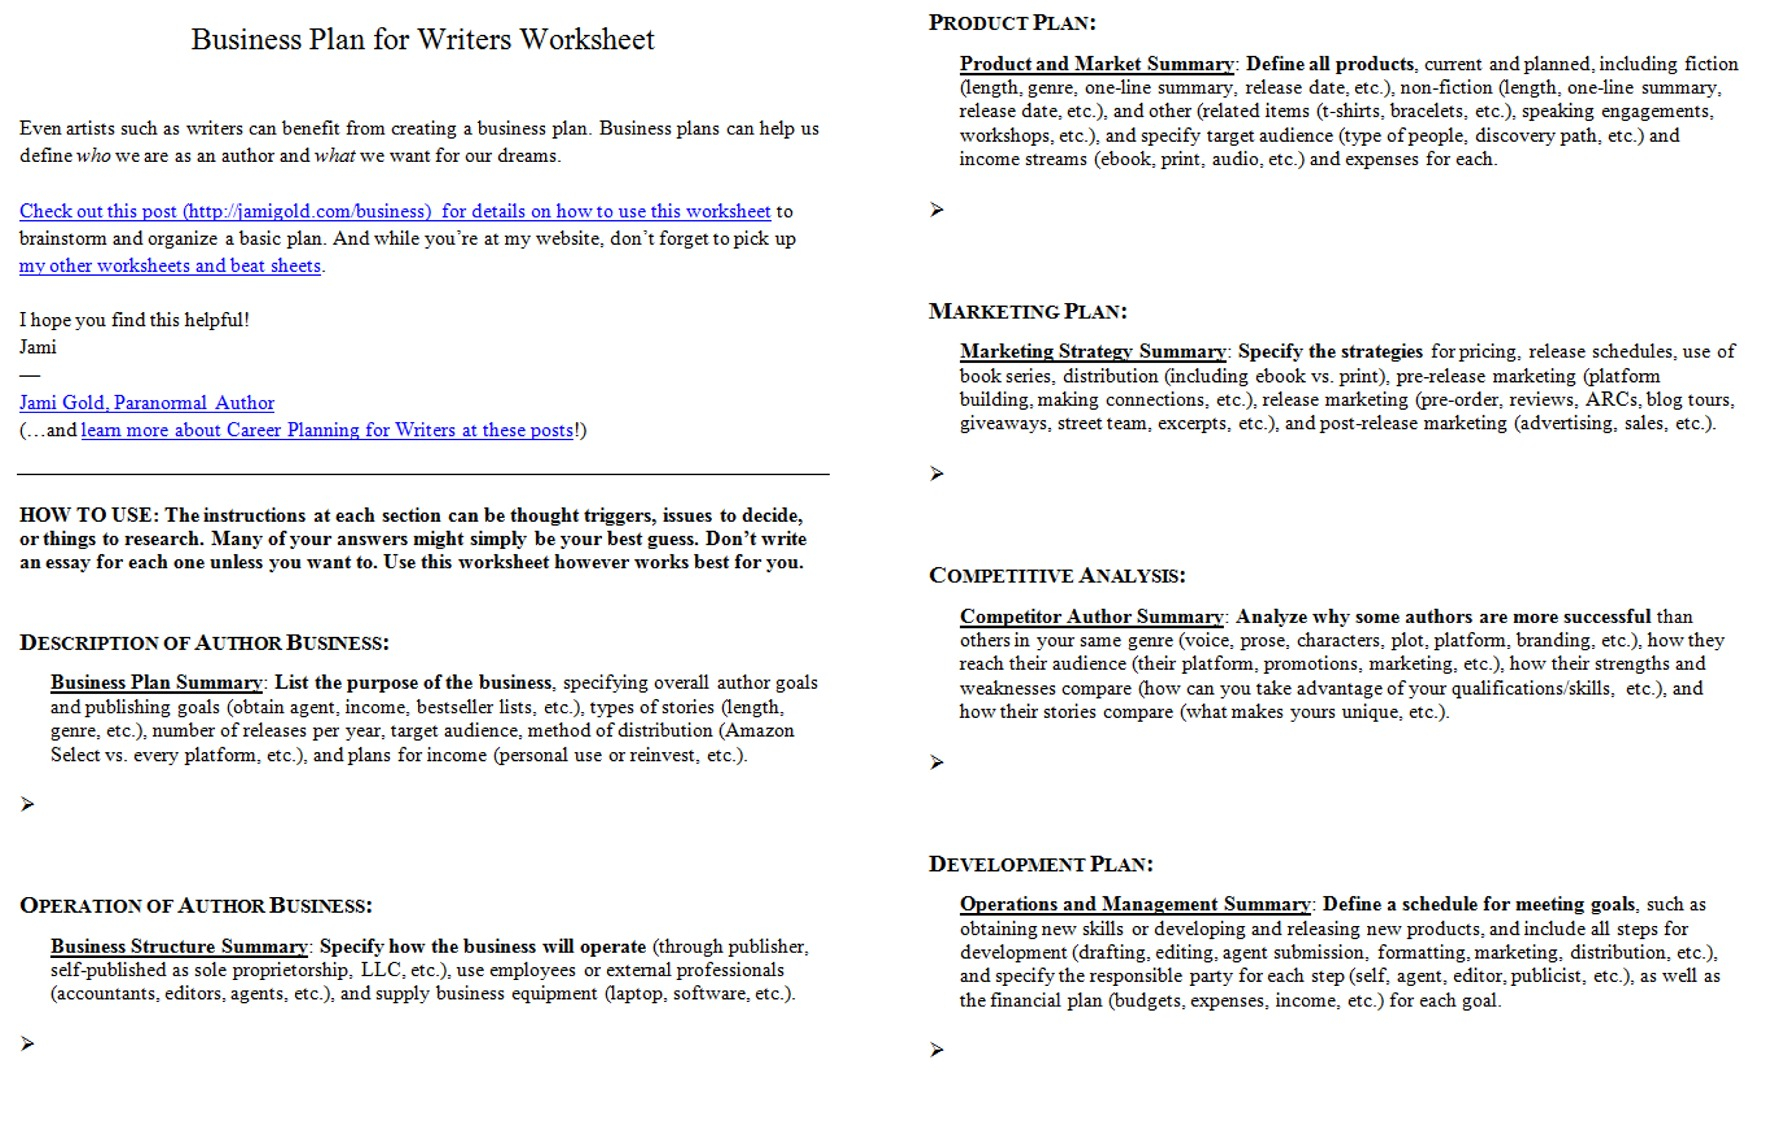 Weirdmailus  Unusual Worksheets For Writers  Jami Gold Paranormal Author With Exciting Screen Shot Of Both Pages Of The Business Plan For Writers Worksheet With Endearing Make My Own Worksheet Also Solvent And Solute Worksheet In Addition Glencoe Science Worksheet Answers And Valentine Printable Worksheets As Well As Hygiene Worksheets For Elementary Students Additionally Winter Weather Worksheets From Jamigoldcom With Weirdmailus  Exciting Worksheets For Writers  Jami Gold Paranormal Author With Endearing Screen Shot Of Both Pages Of The Business Plan For Writers Worksheet And Unusual Make My Own Worksheet Also Solvent And Solute Worksheet In Addition Glencoe Science Worksheet Answers From Jamigoldcom